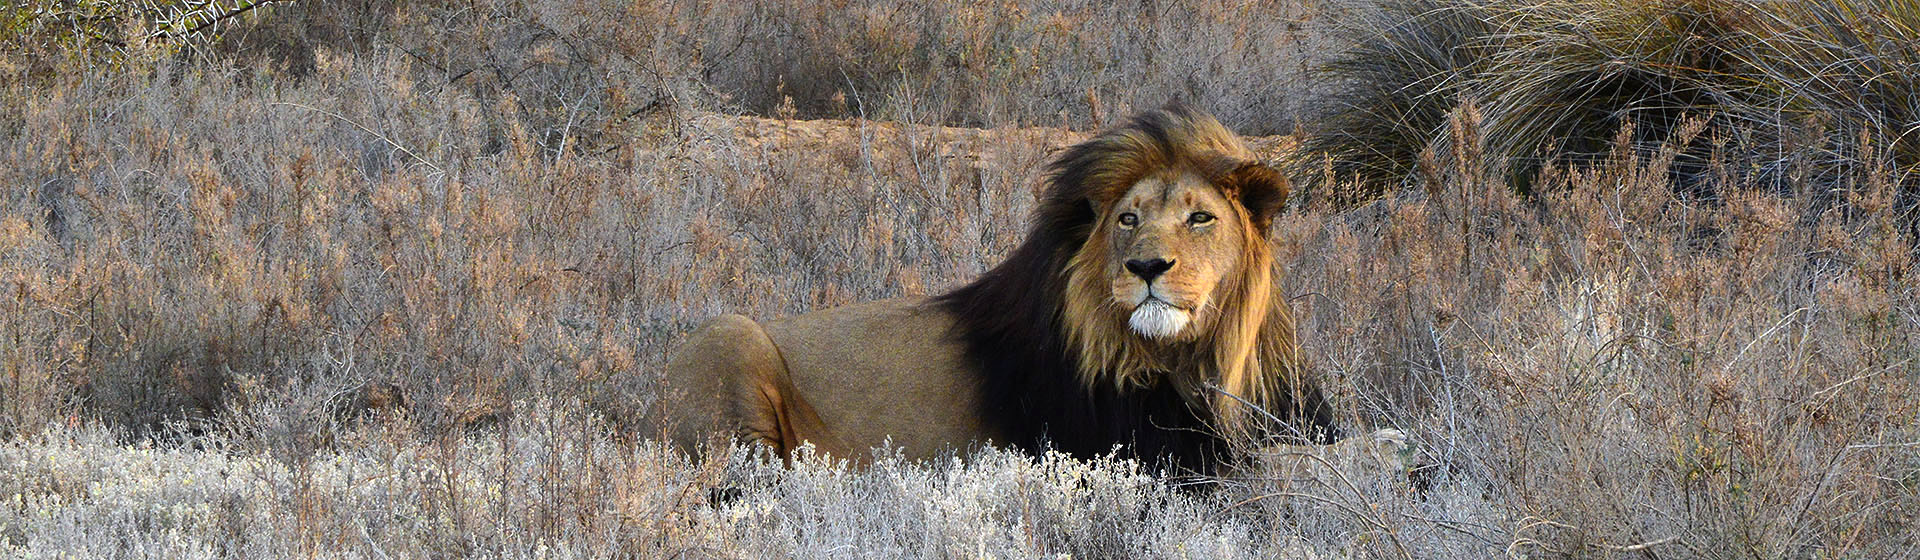 Male Lion, Inverdoorn Game Reserve